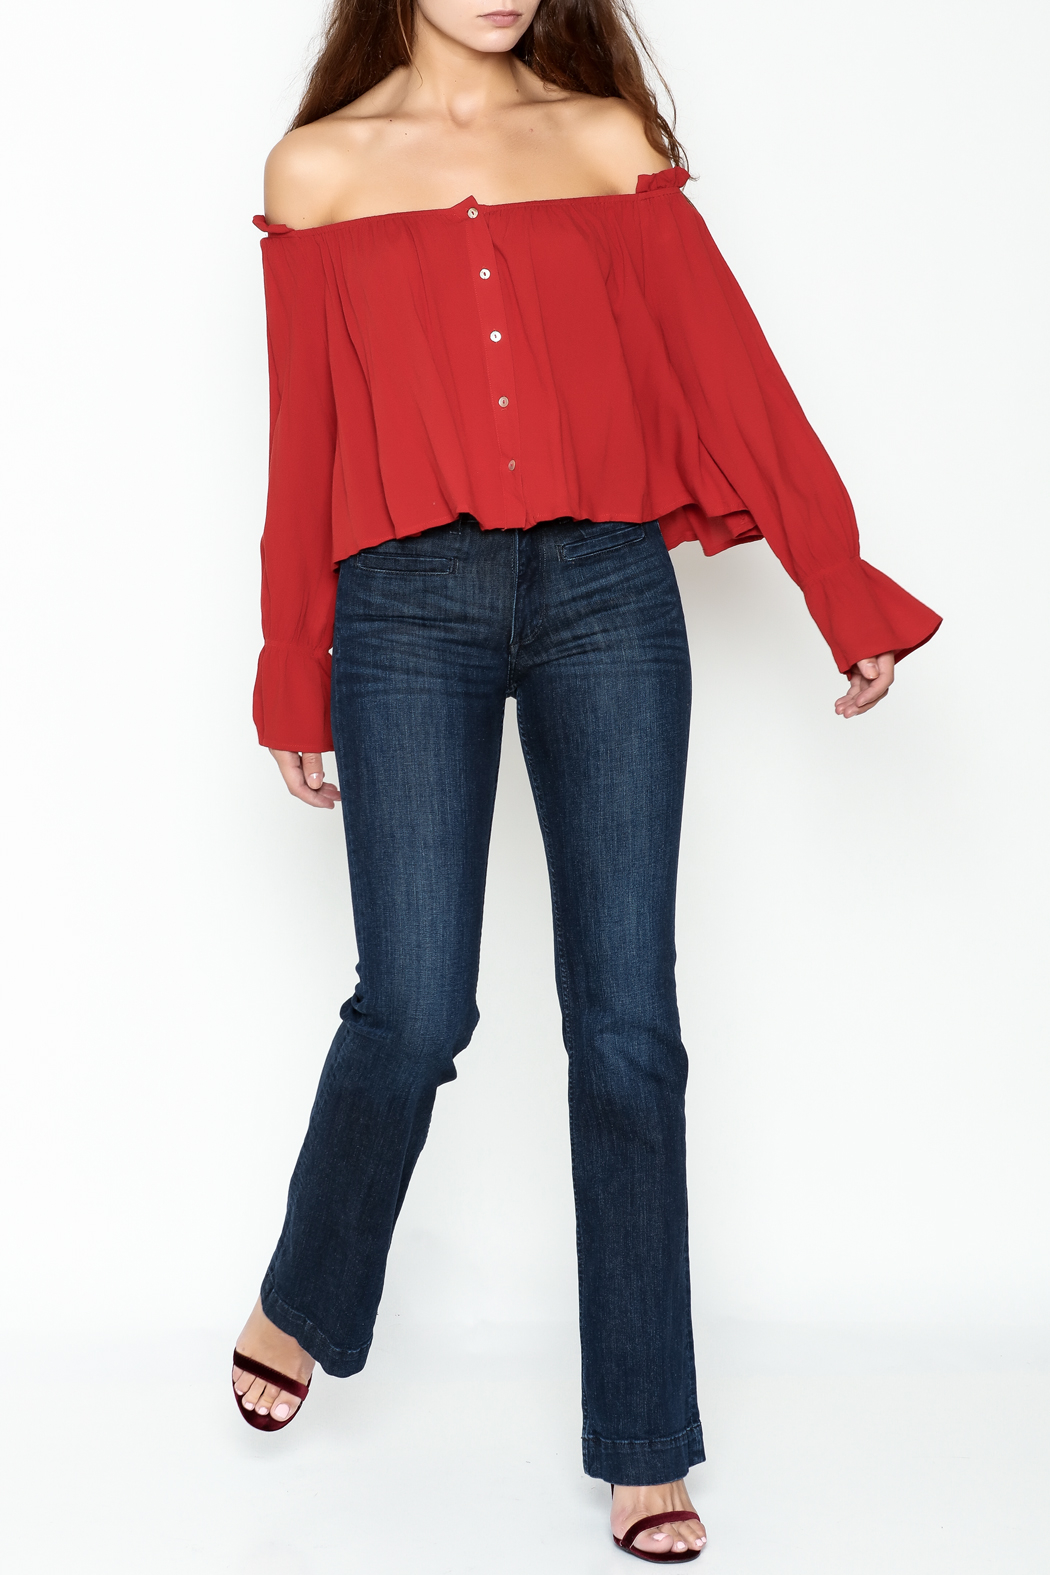 lunik Off Shoulder Buttoned Top - Side Cropped Image